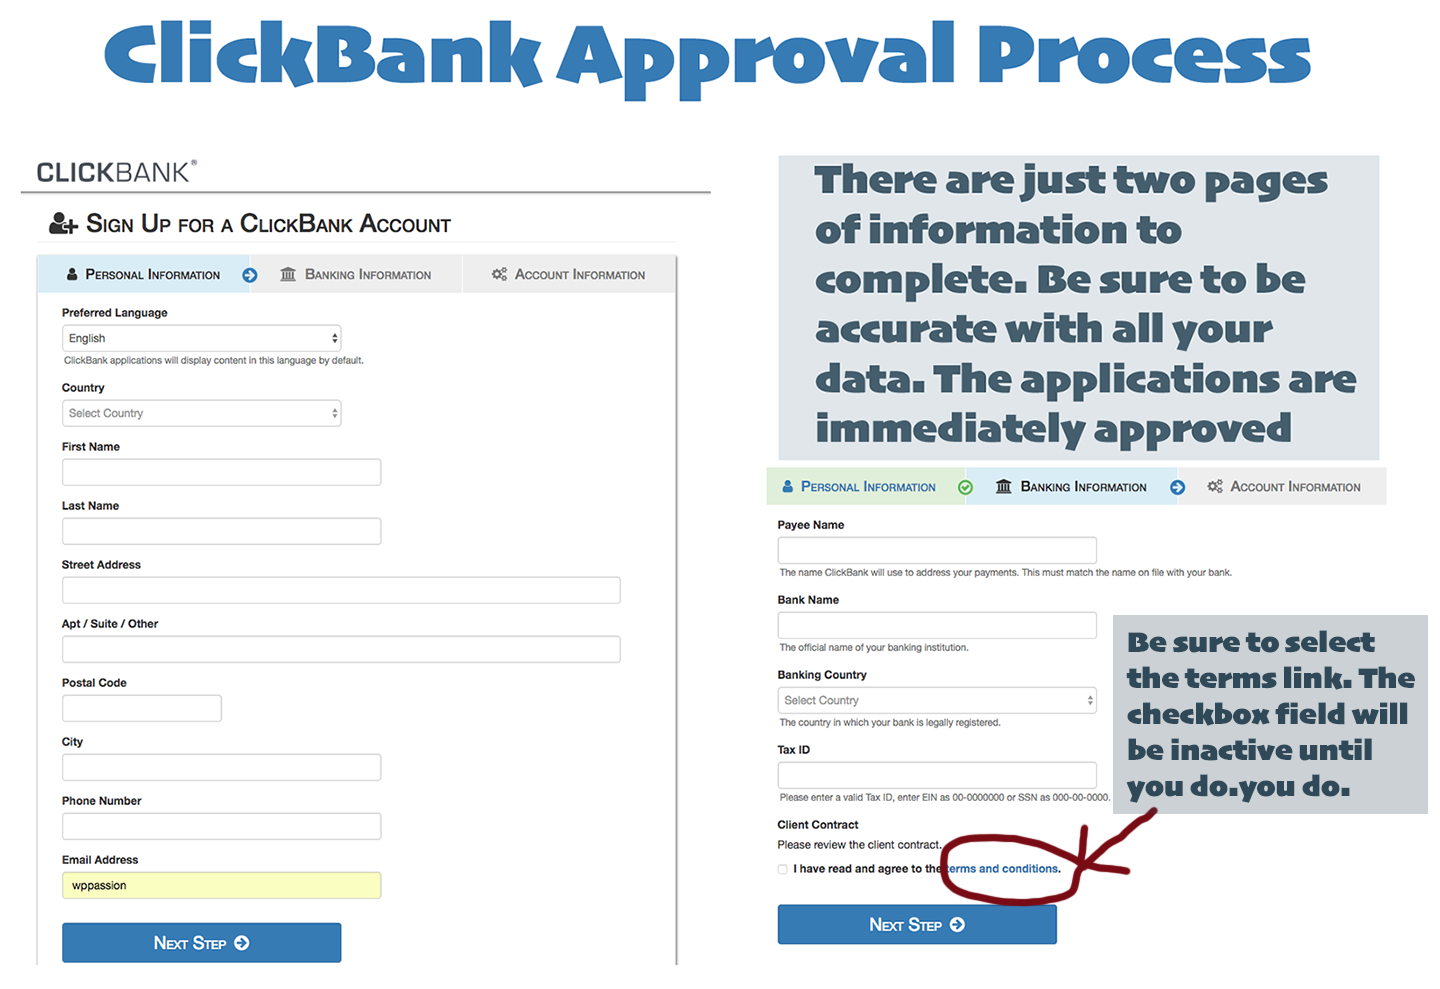 clickbank approval